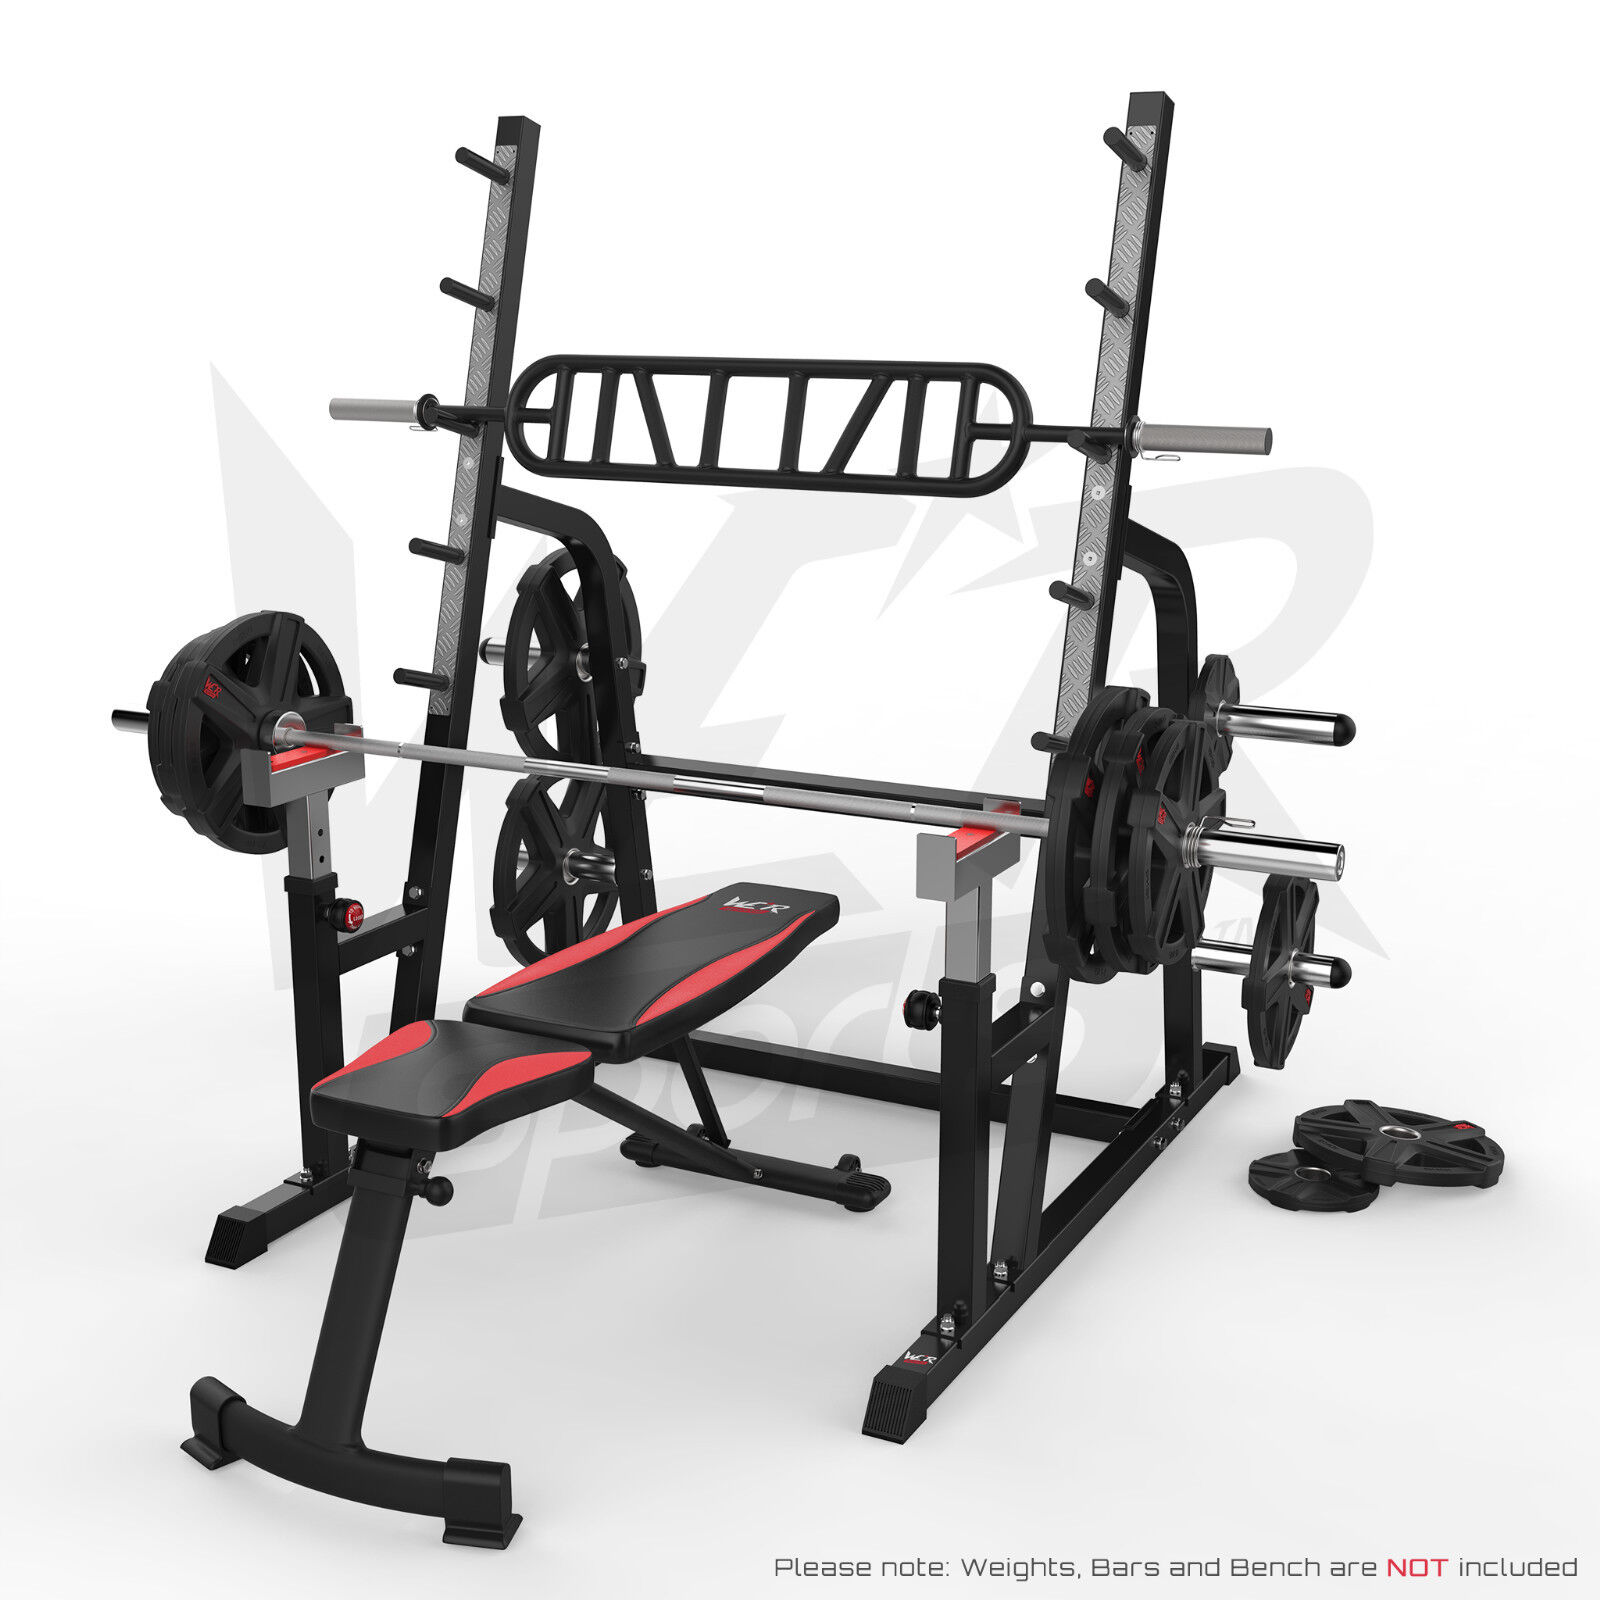 co sports squat diamond marcy one bench black elite uk amazon with unisex dp outdoors press weight olympic size rack